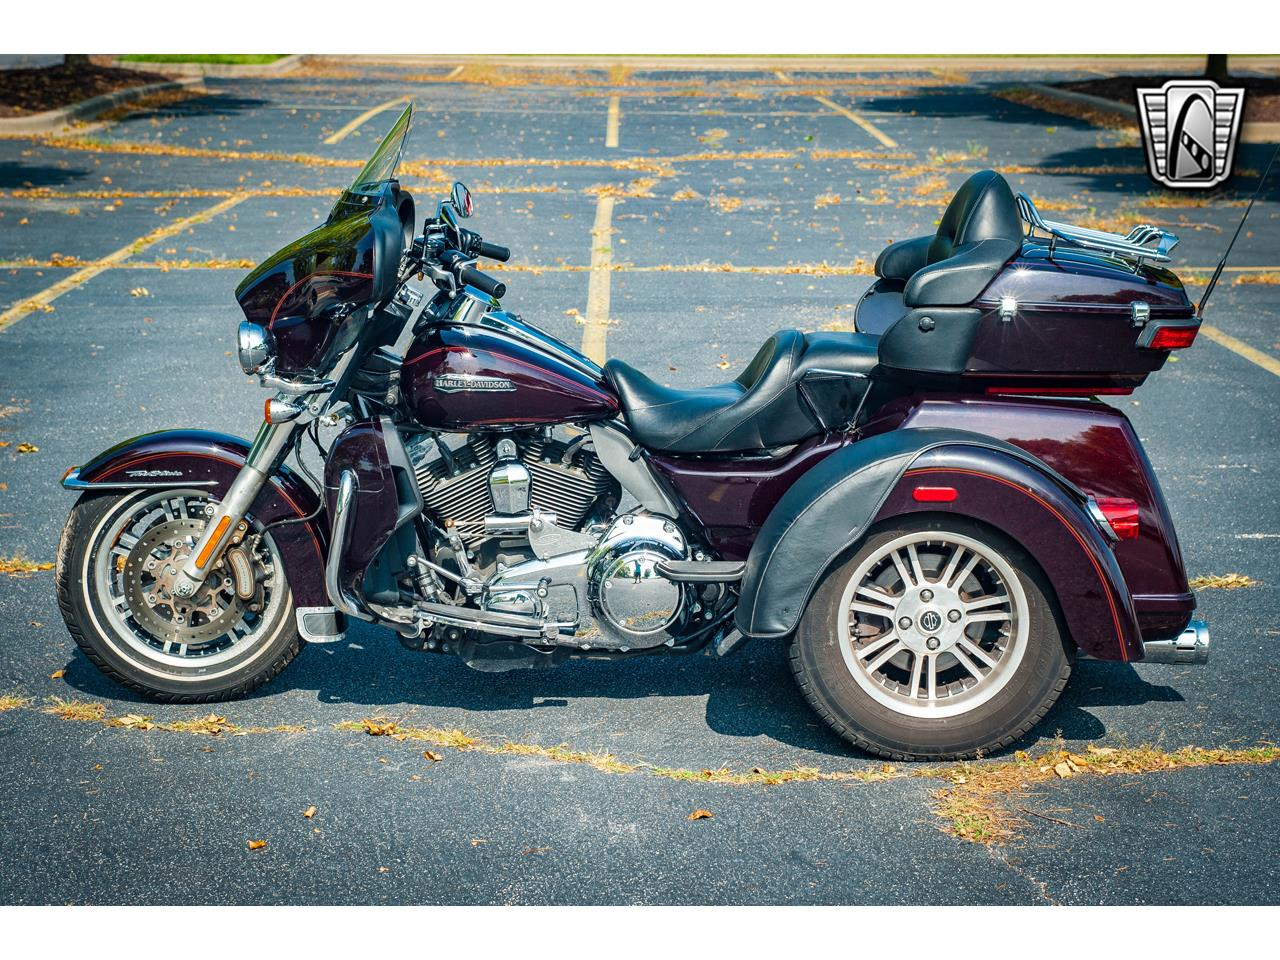 2014 Harley-Davidson FLHTCU (CC-1265215) for sale in O'Fallon, Illinois